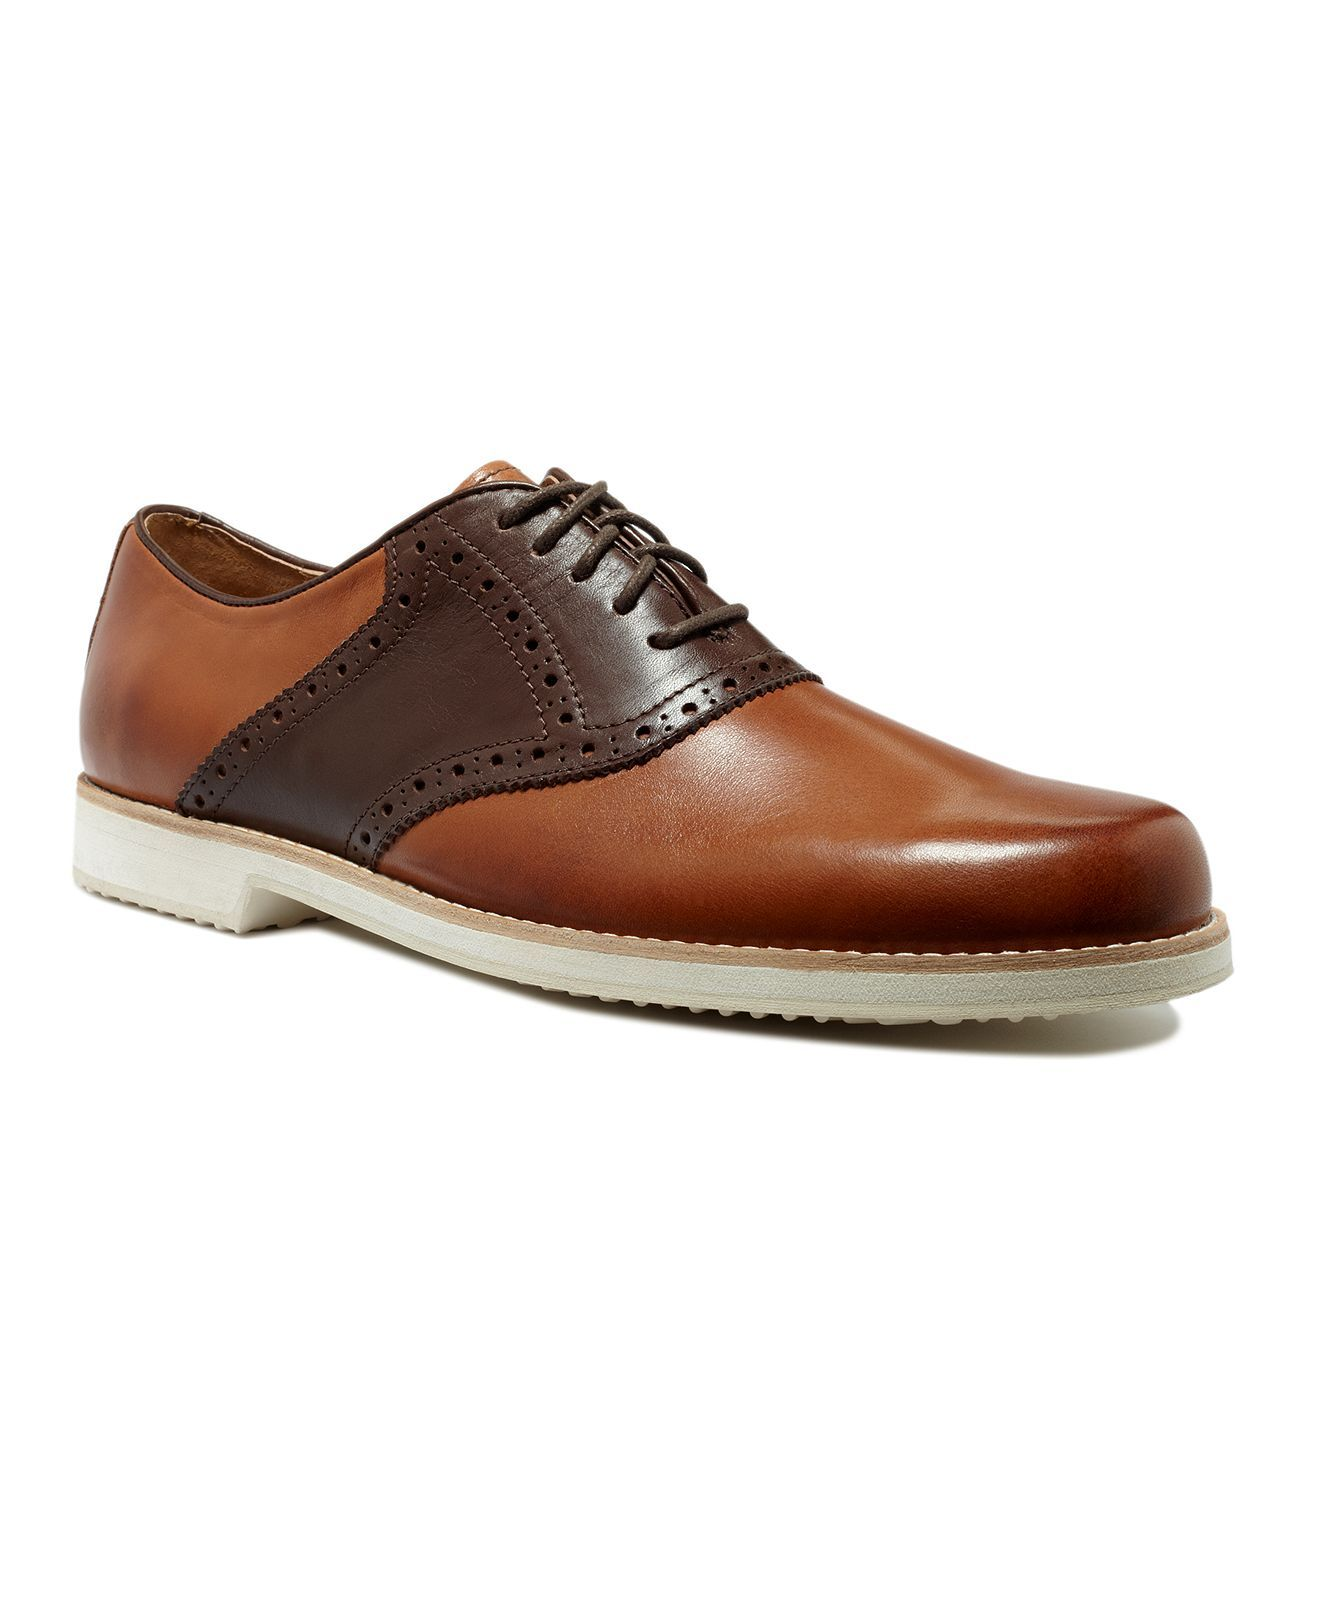 13d63956c0914 I thought these tan and dark brown Ralph Lauren saddle shoes were ...